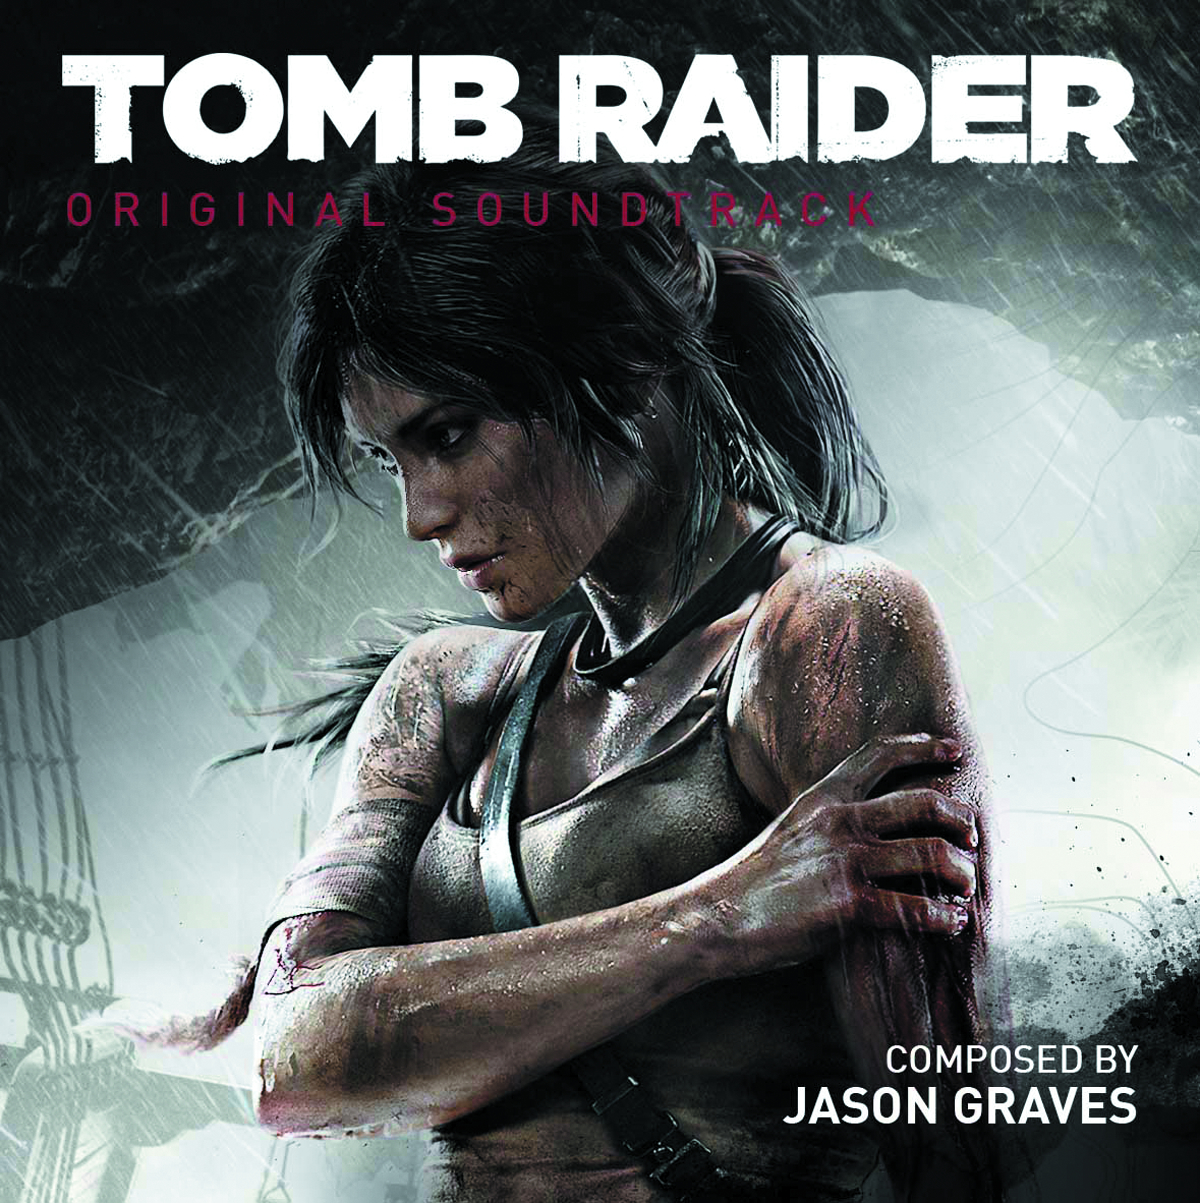 TOMB RAIDER 2013 OST CD